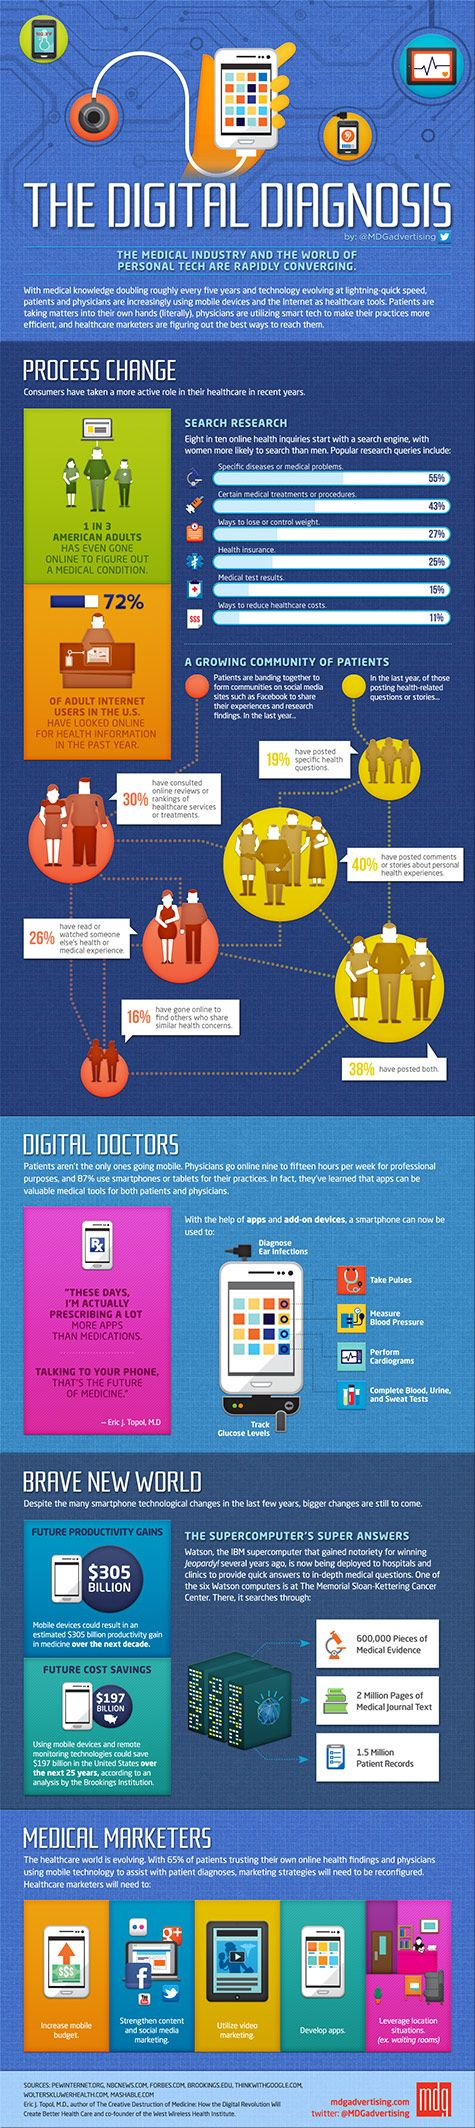 new digital health diagnosis infographic created by MDG Advertising comprehensively outlines how the lines between the healthcare industry and consumer electronics continue to blur with each passing year.